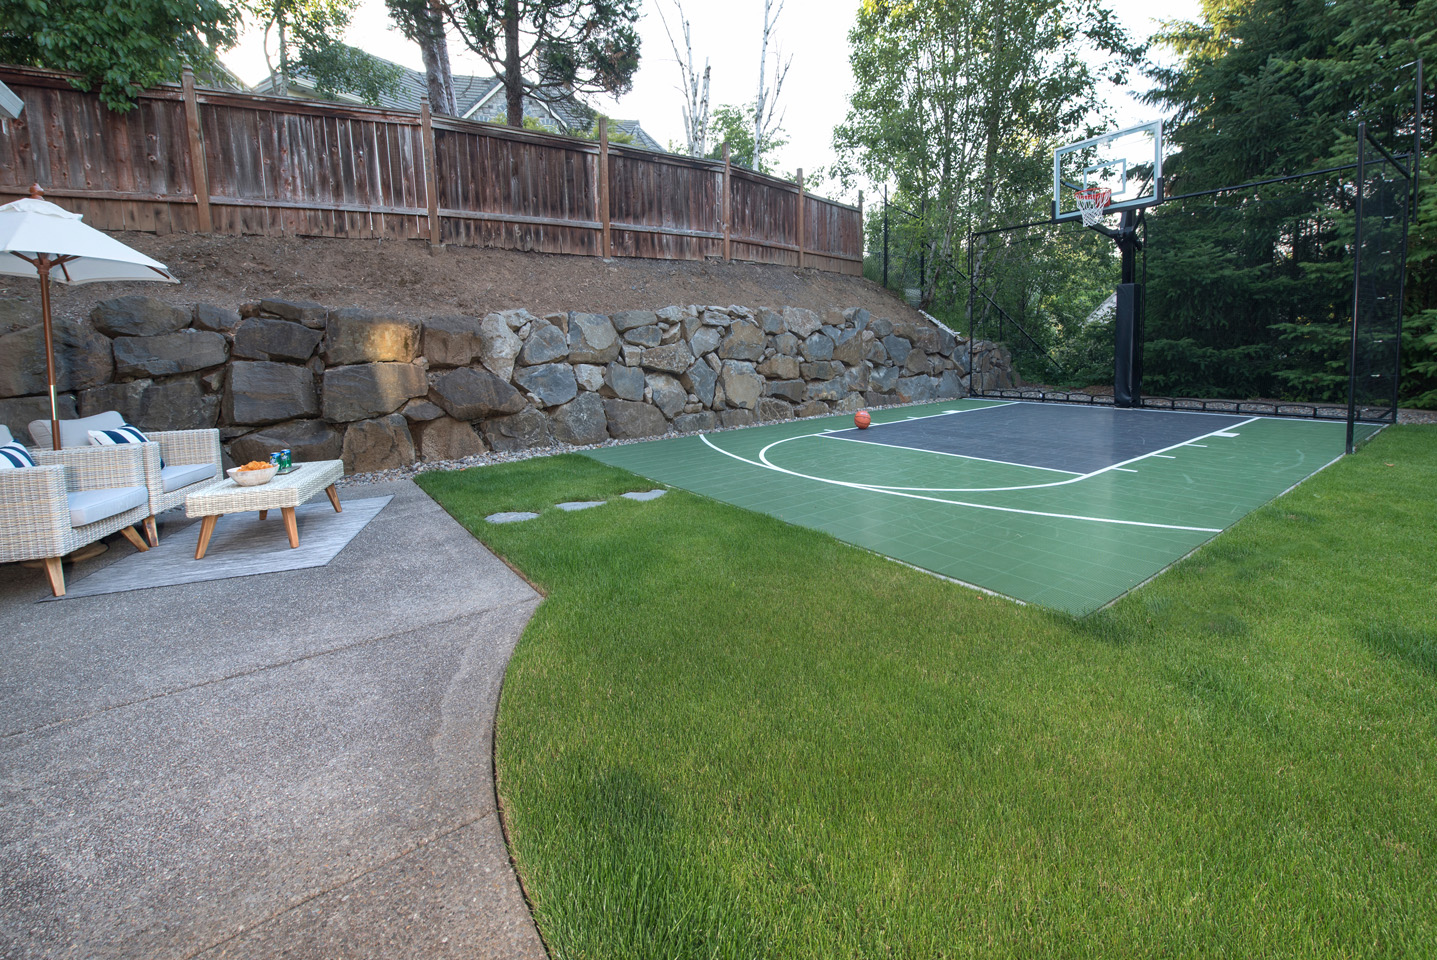 Basketball court with spectator lounge area